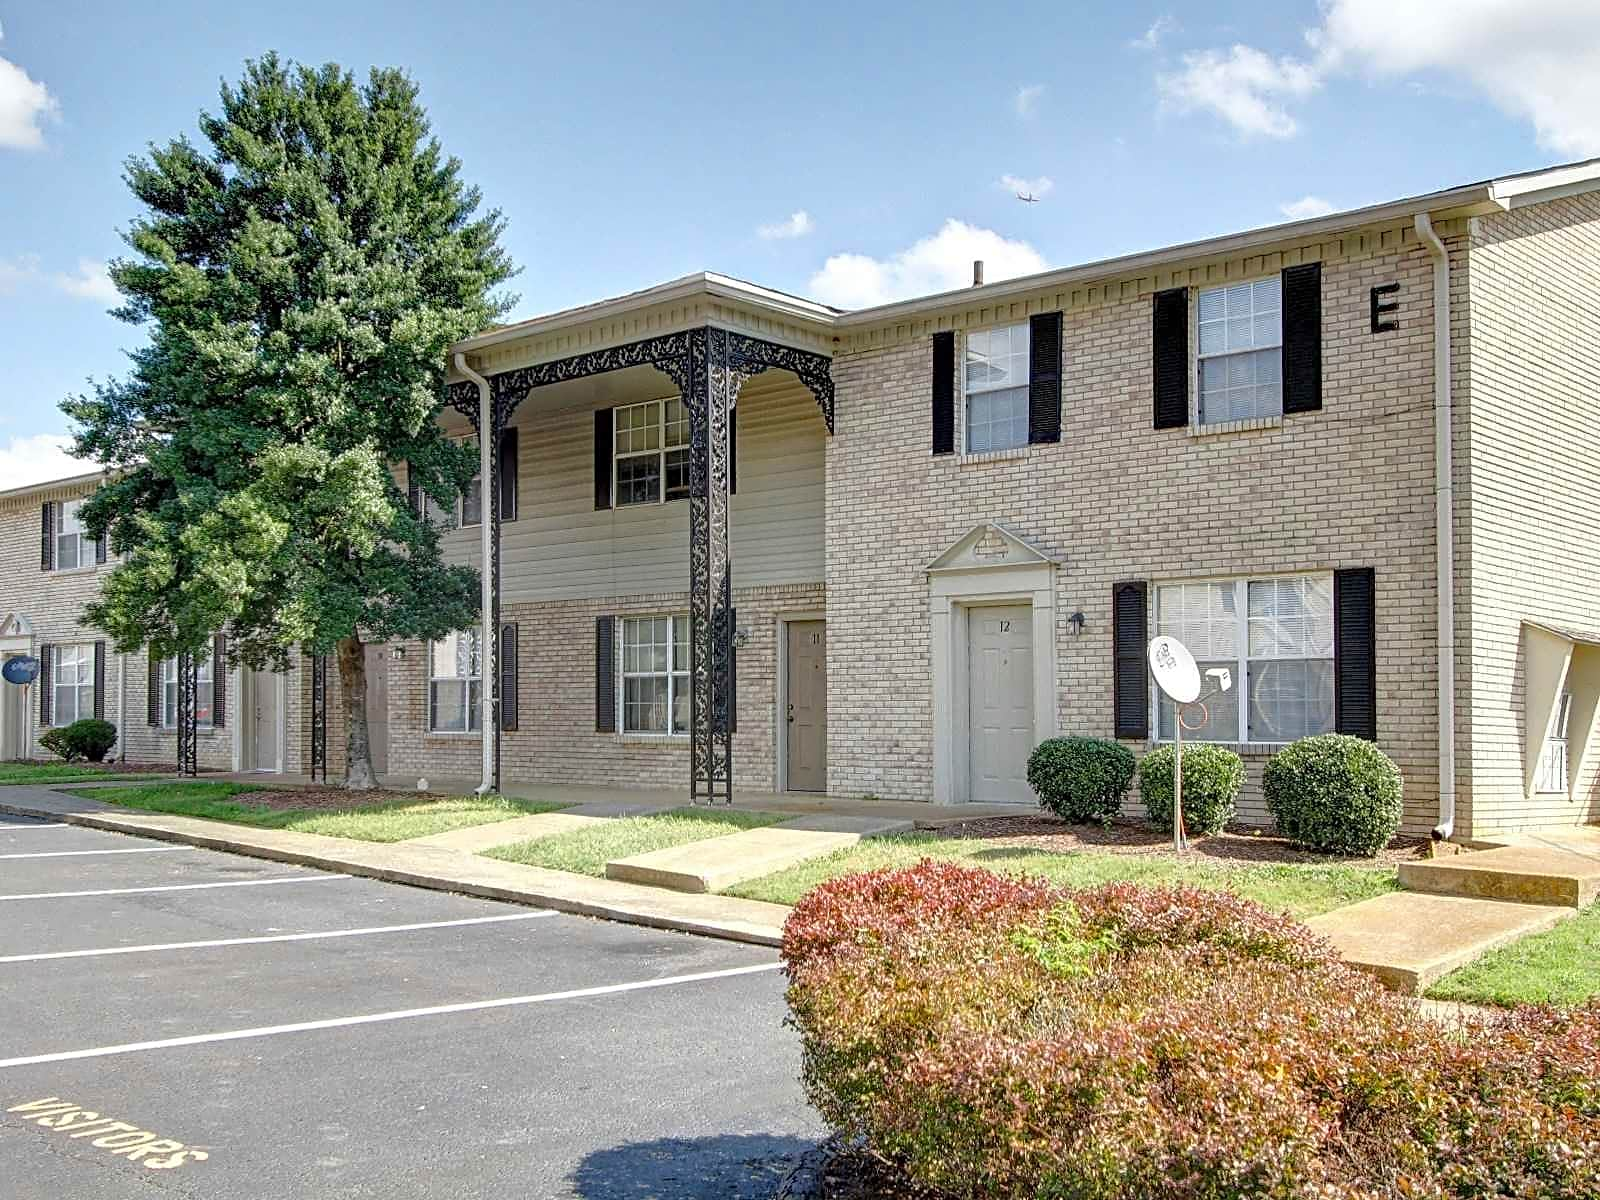 Photo: Madison Apartment for Rent - $575.00 / month; 1 Bd & 1 Ba